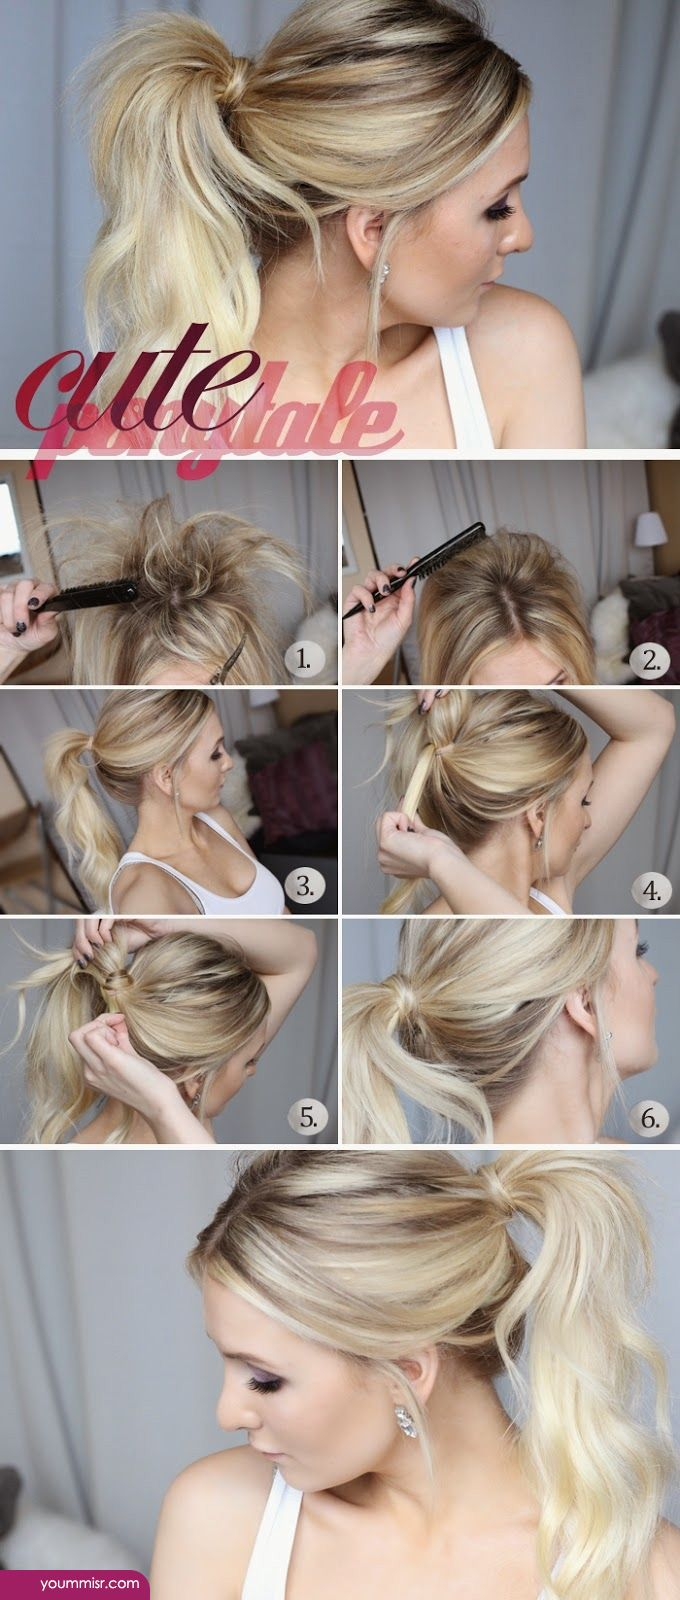 Marvelous Cool Easy Hairstyles 2015 2016 Step By Step Youtube Short Hairstyles For Black Women Fulllsitofus